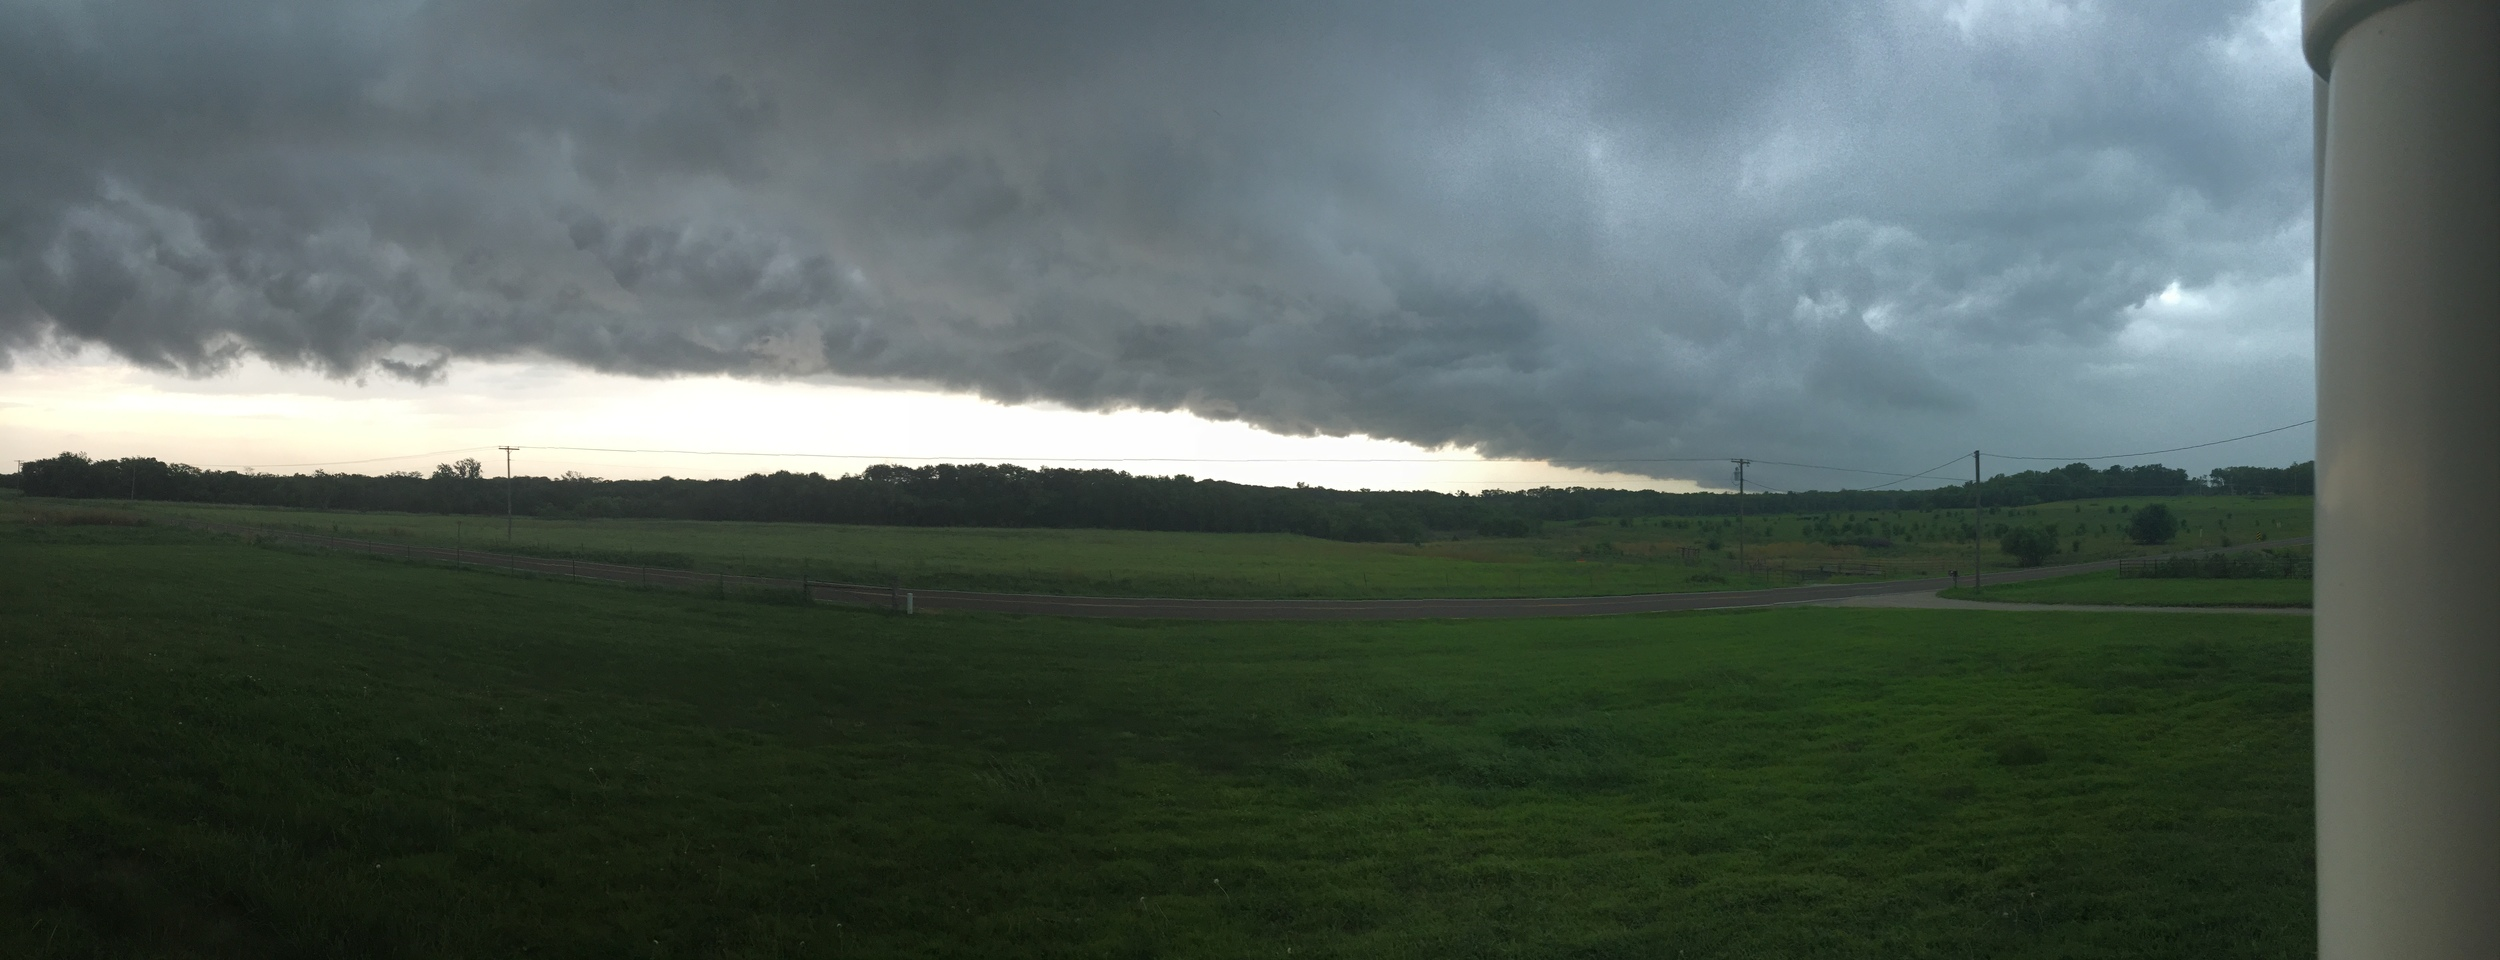 the storm front that approached and grounded me in central kansas